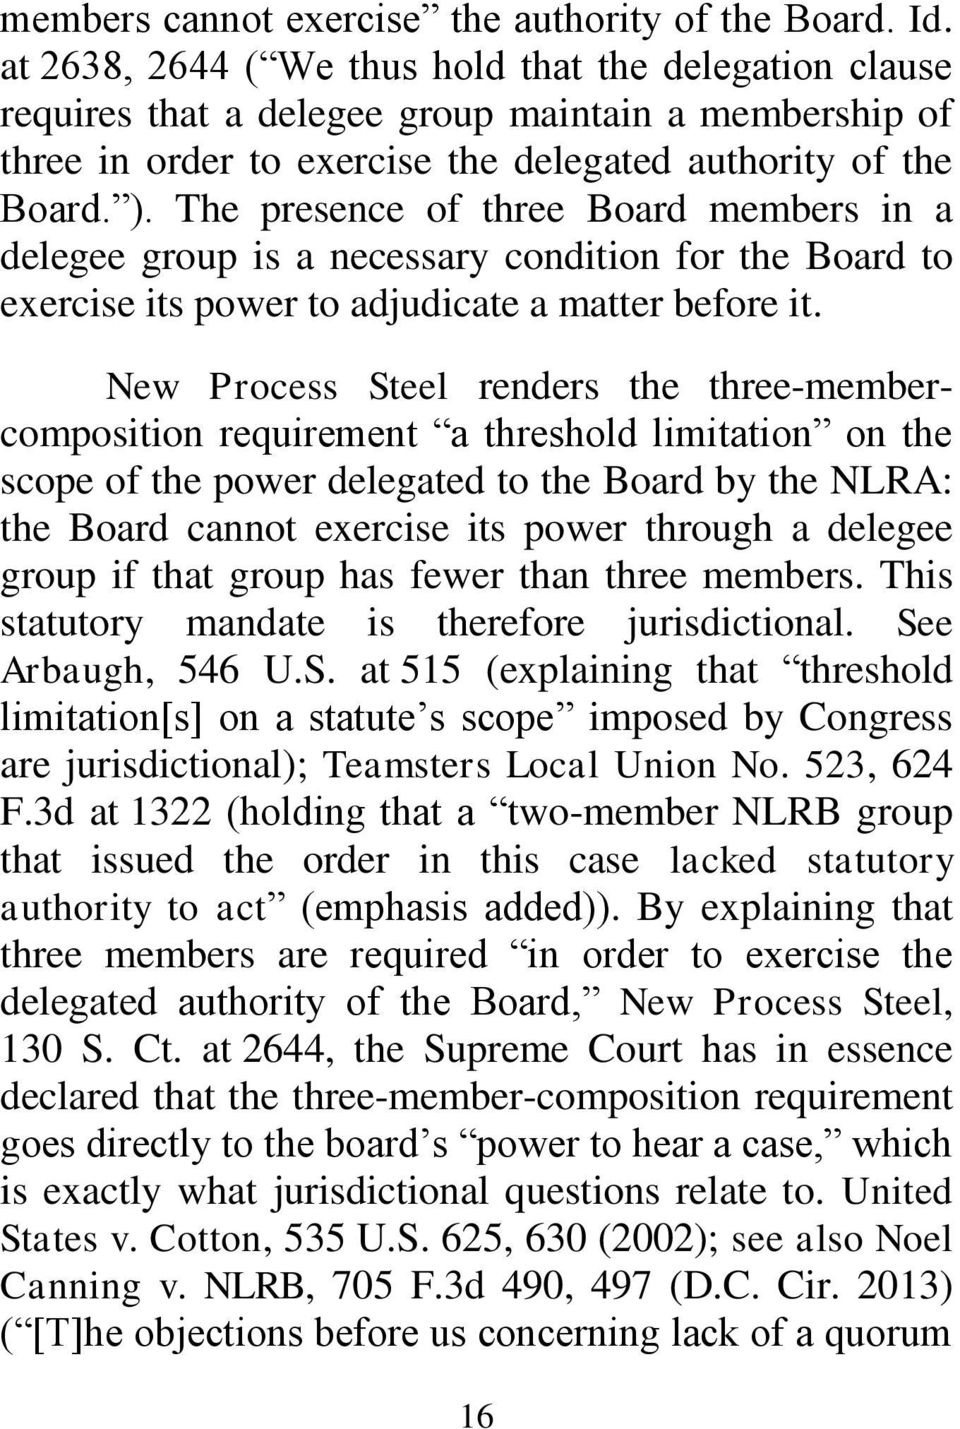 The presence of three Board members in a delegee group is a necessary condition for the Board to exercise its power to adjudicate a matter before it.